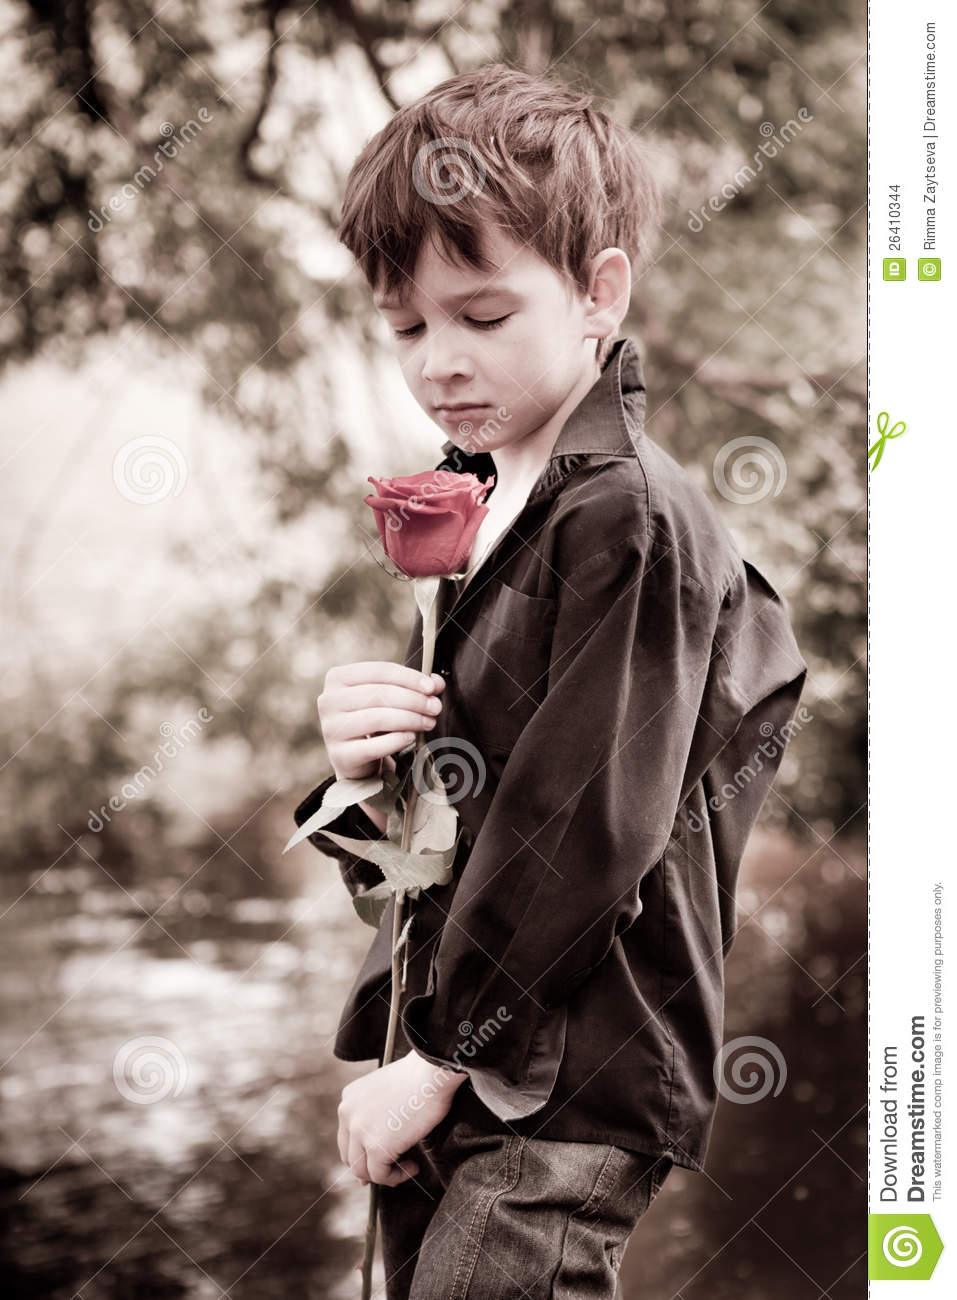 Images Of Boys Painted Bedrooms: Boy With Rose In His Hand Stock Images